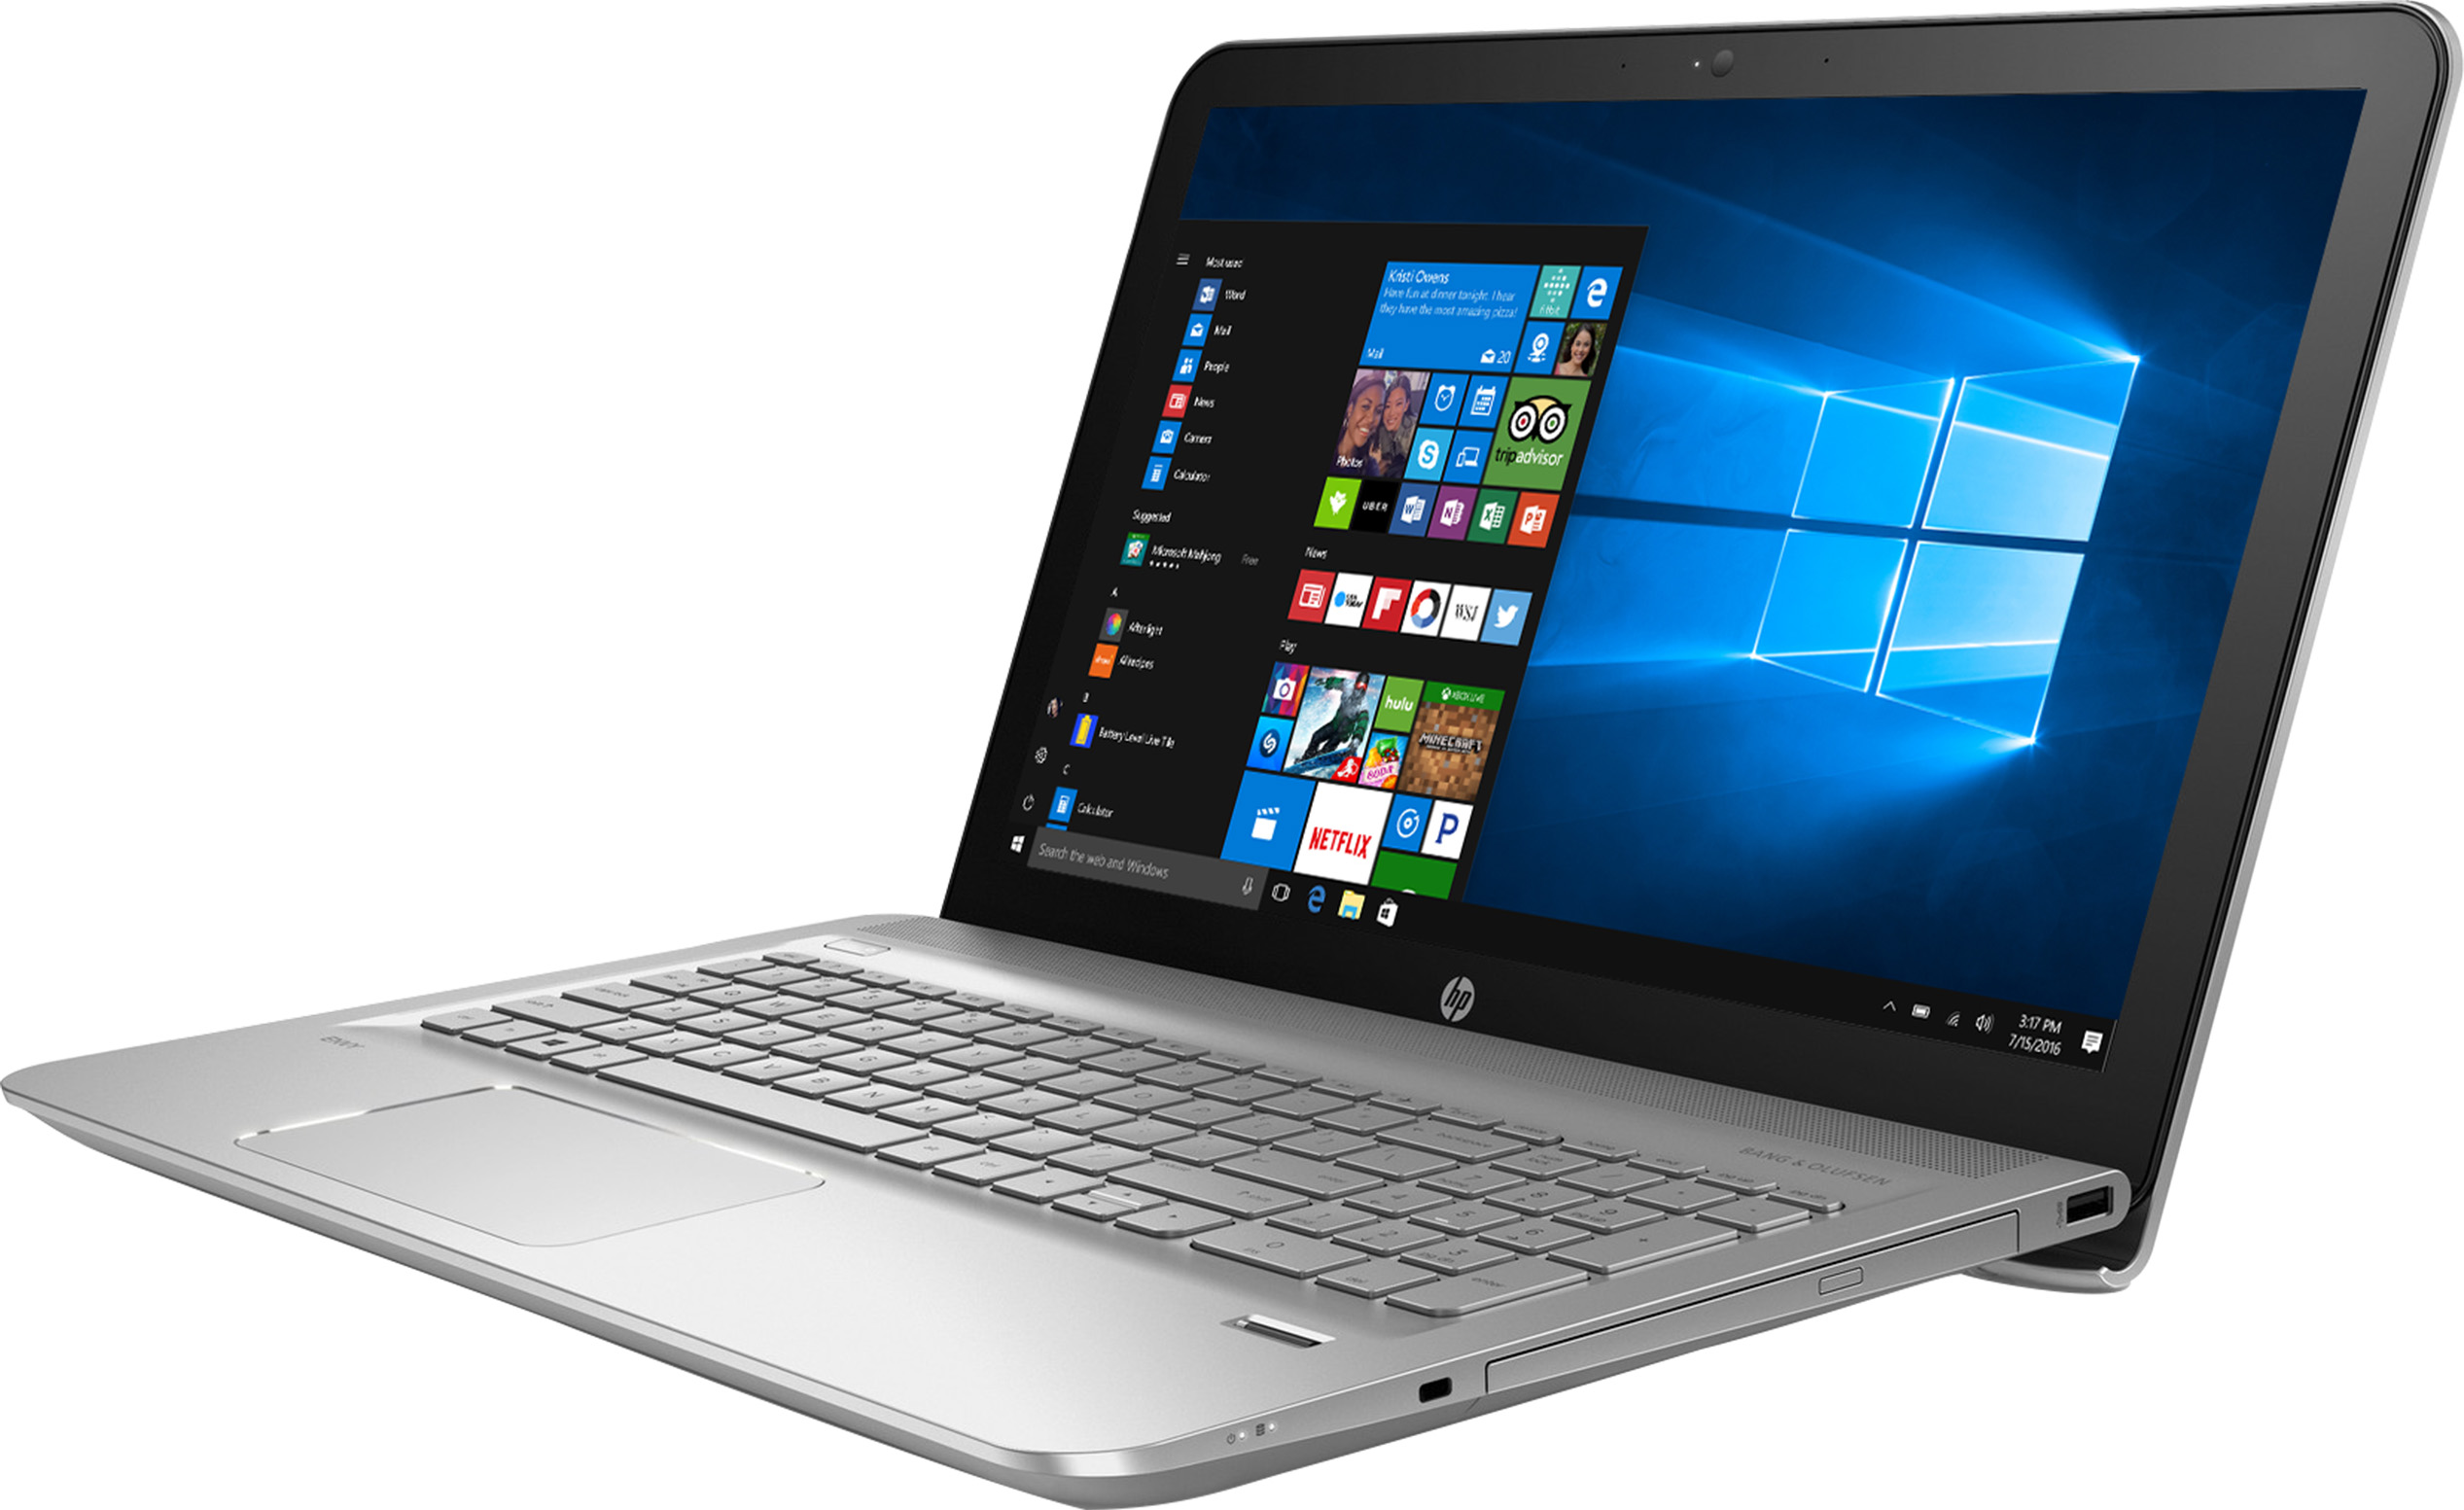 HP ENVY 15-ae100na Laptop